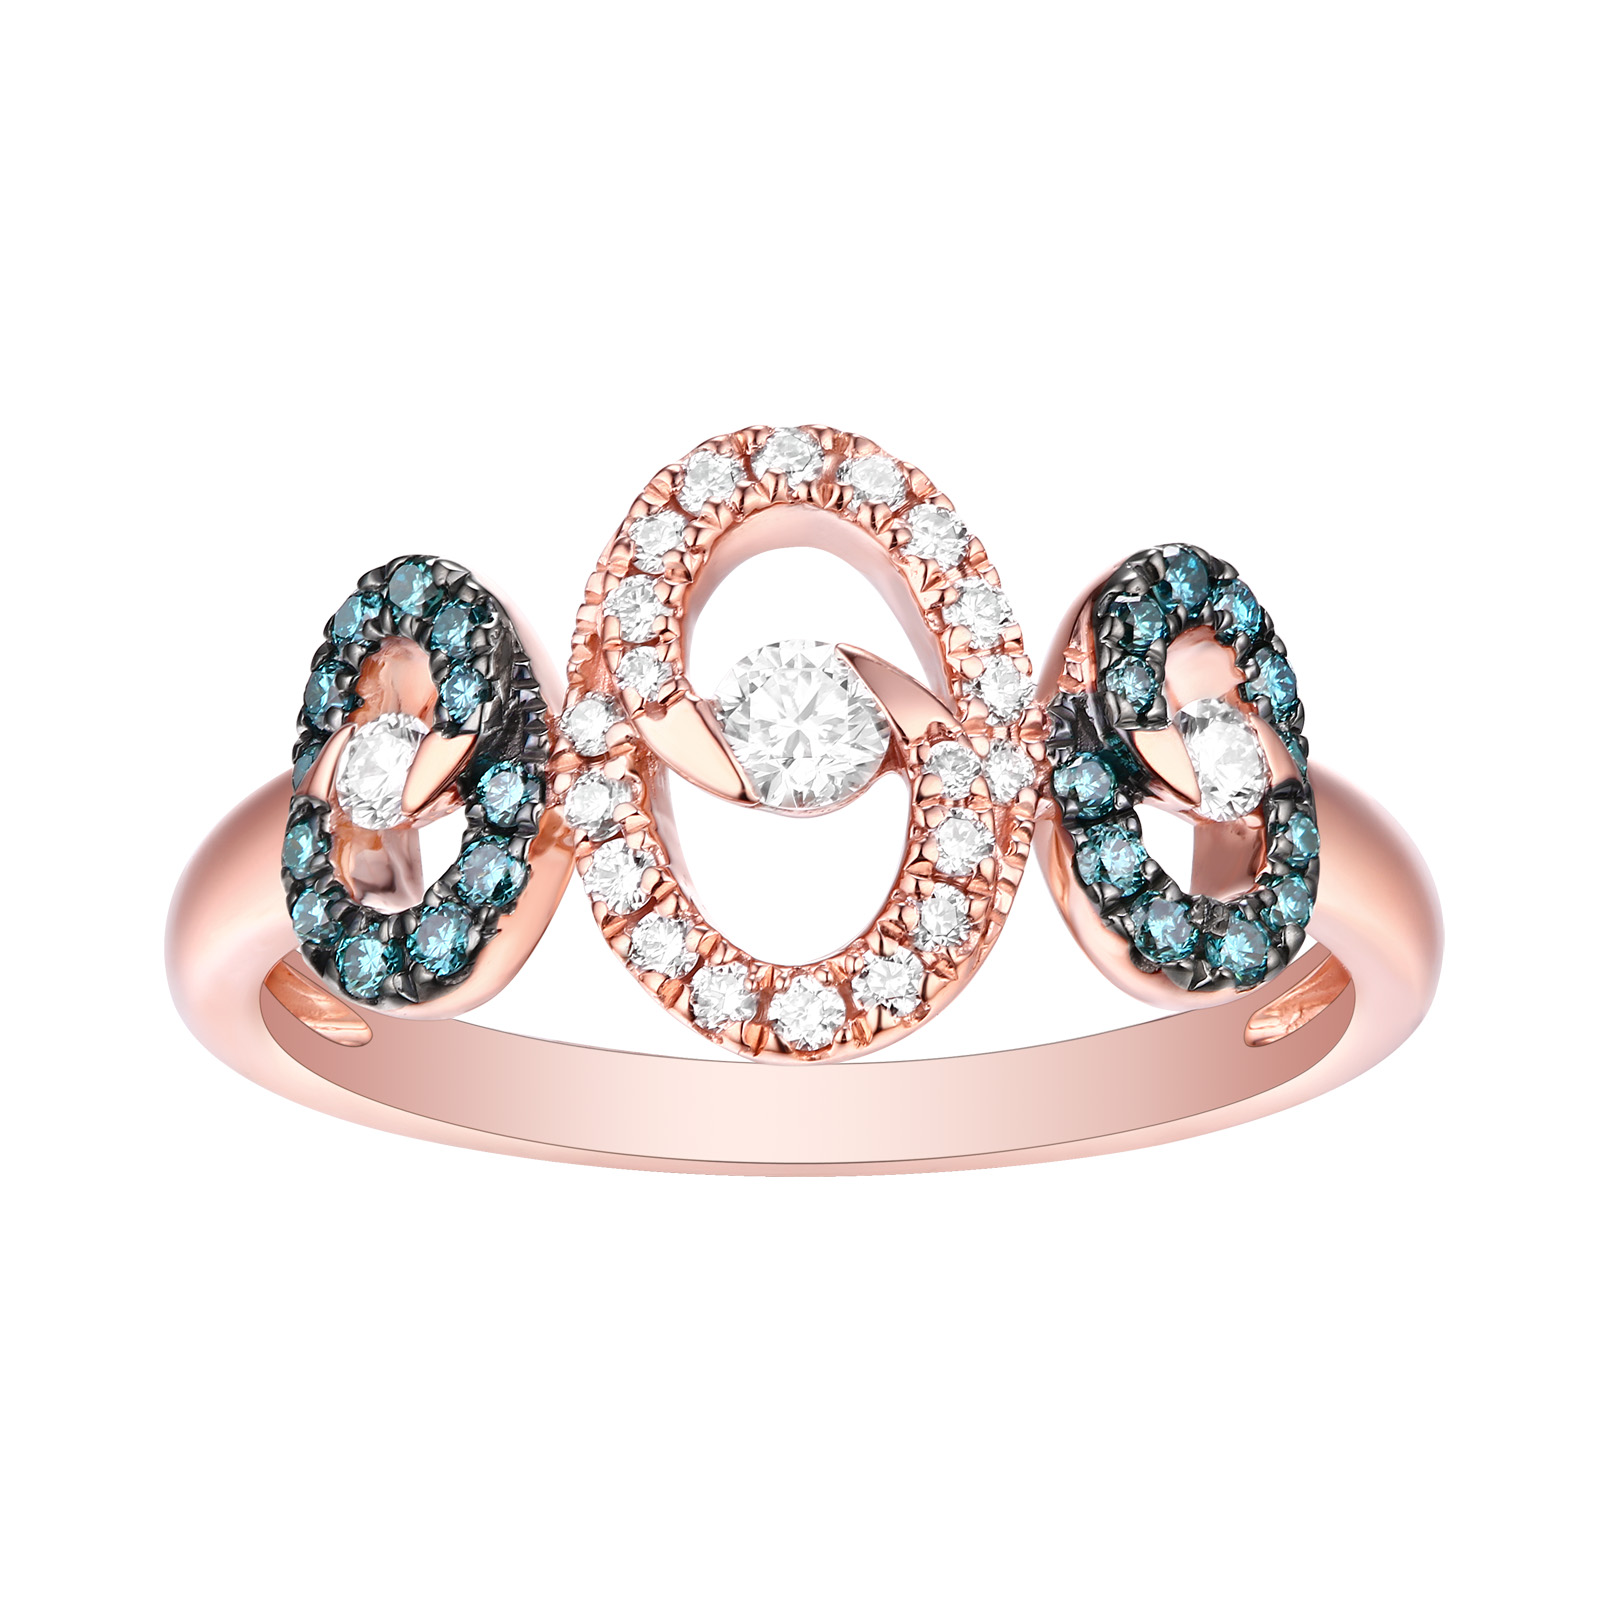 R26575WIC- 14K Rose Gold Diamond Ring, 0.42 TCW